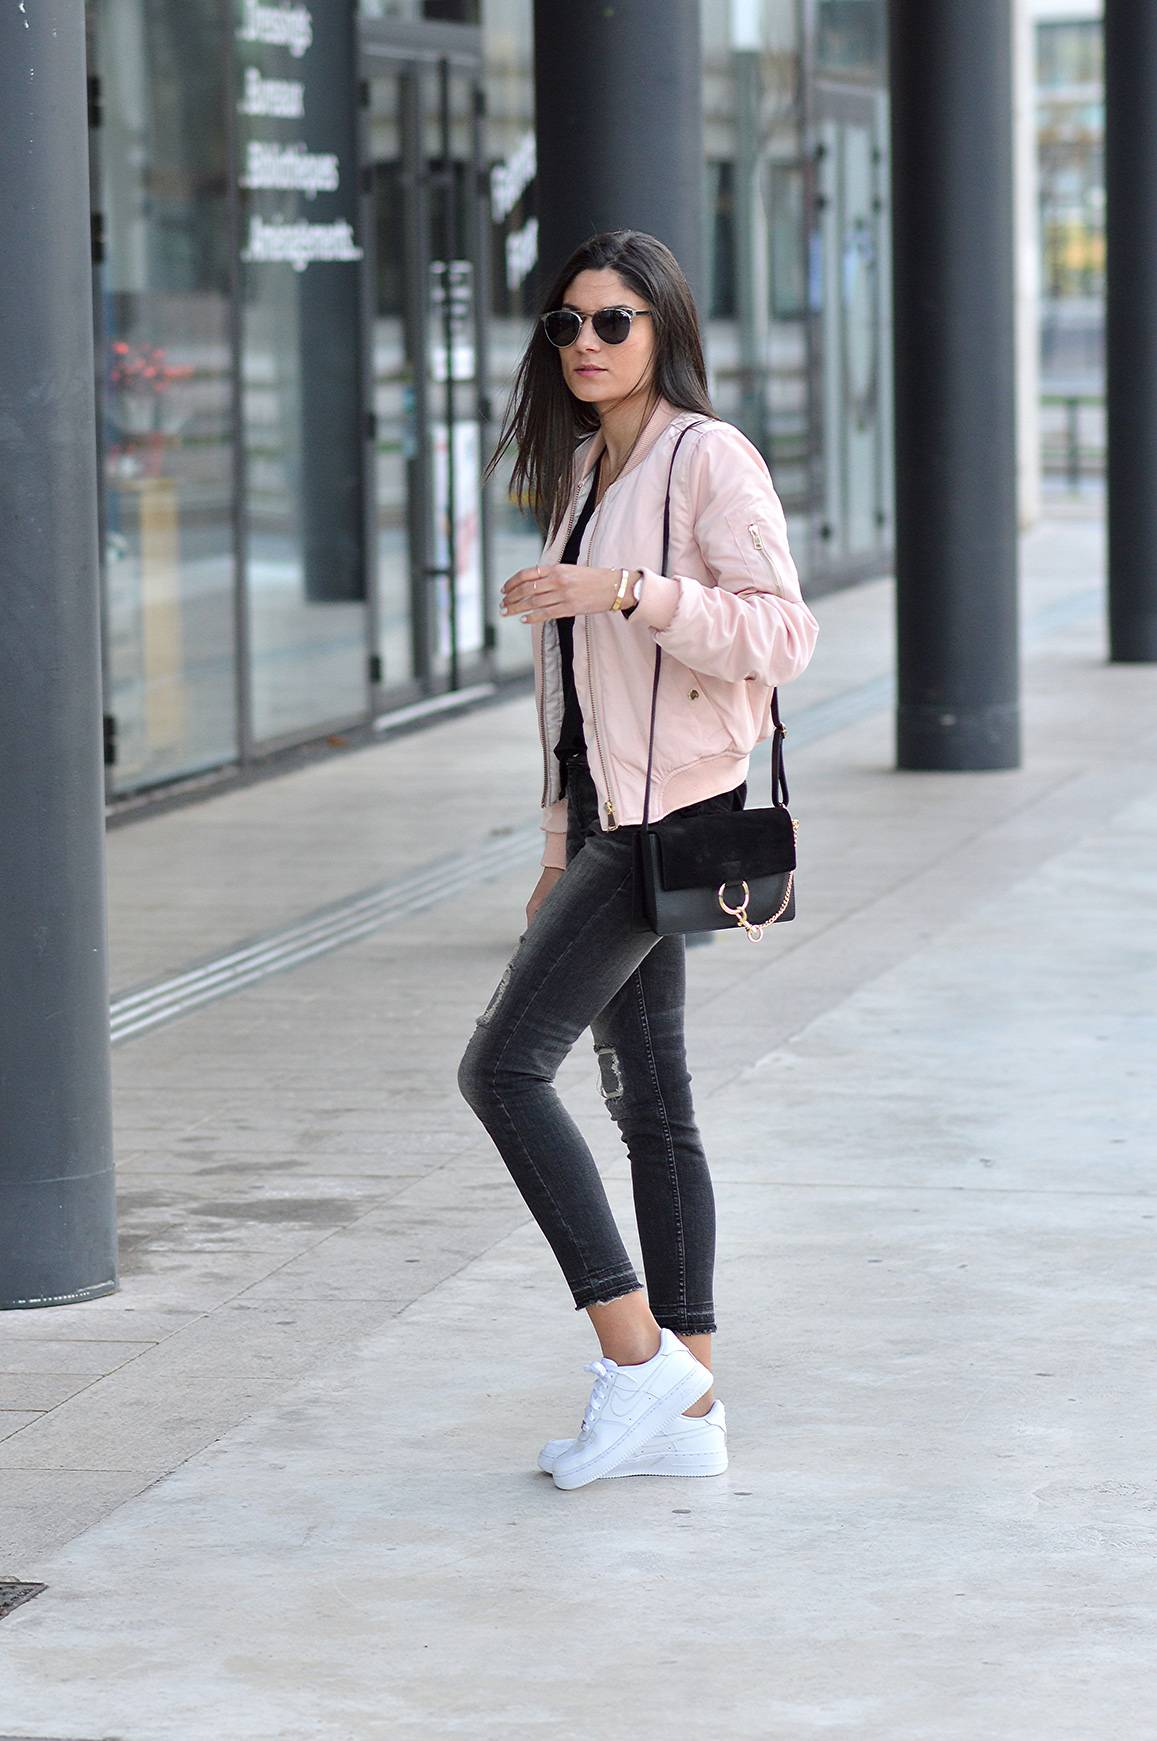 Federica L. wears the bomber jacket in a pretty shade of pale pink, capturing